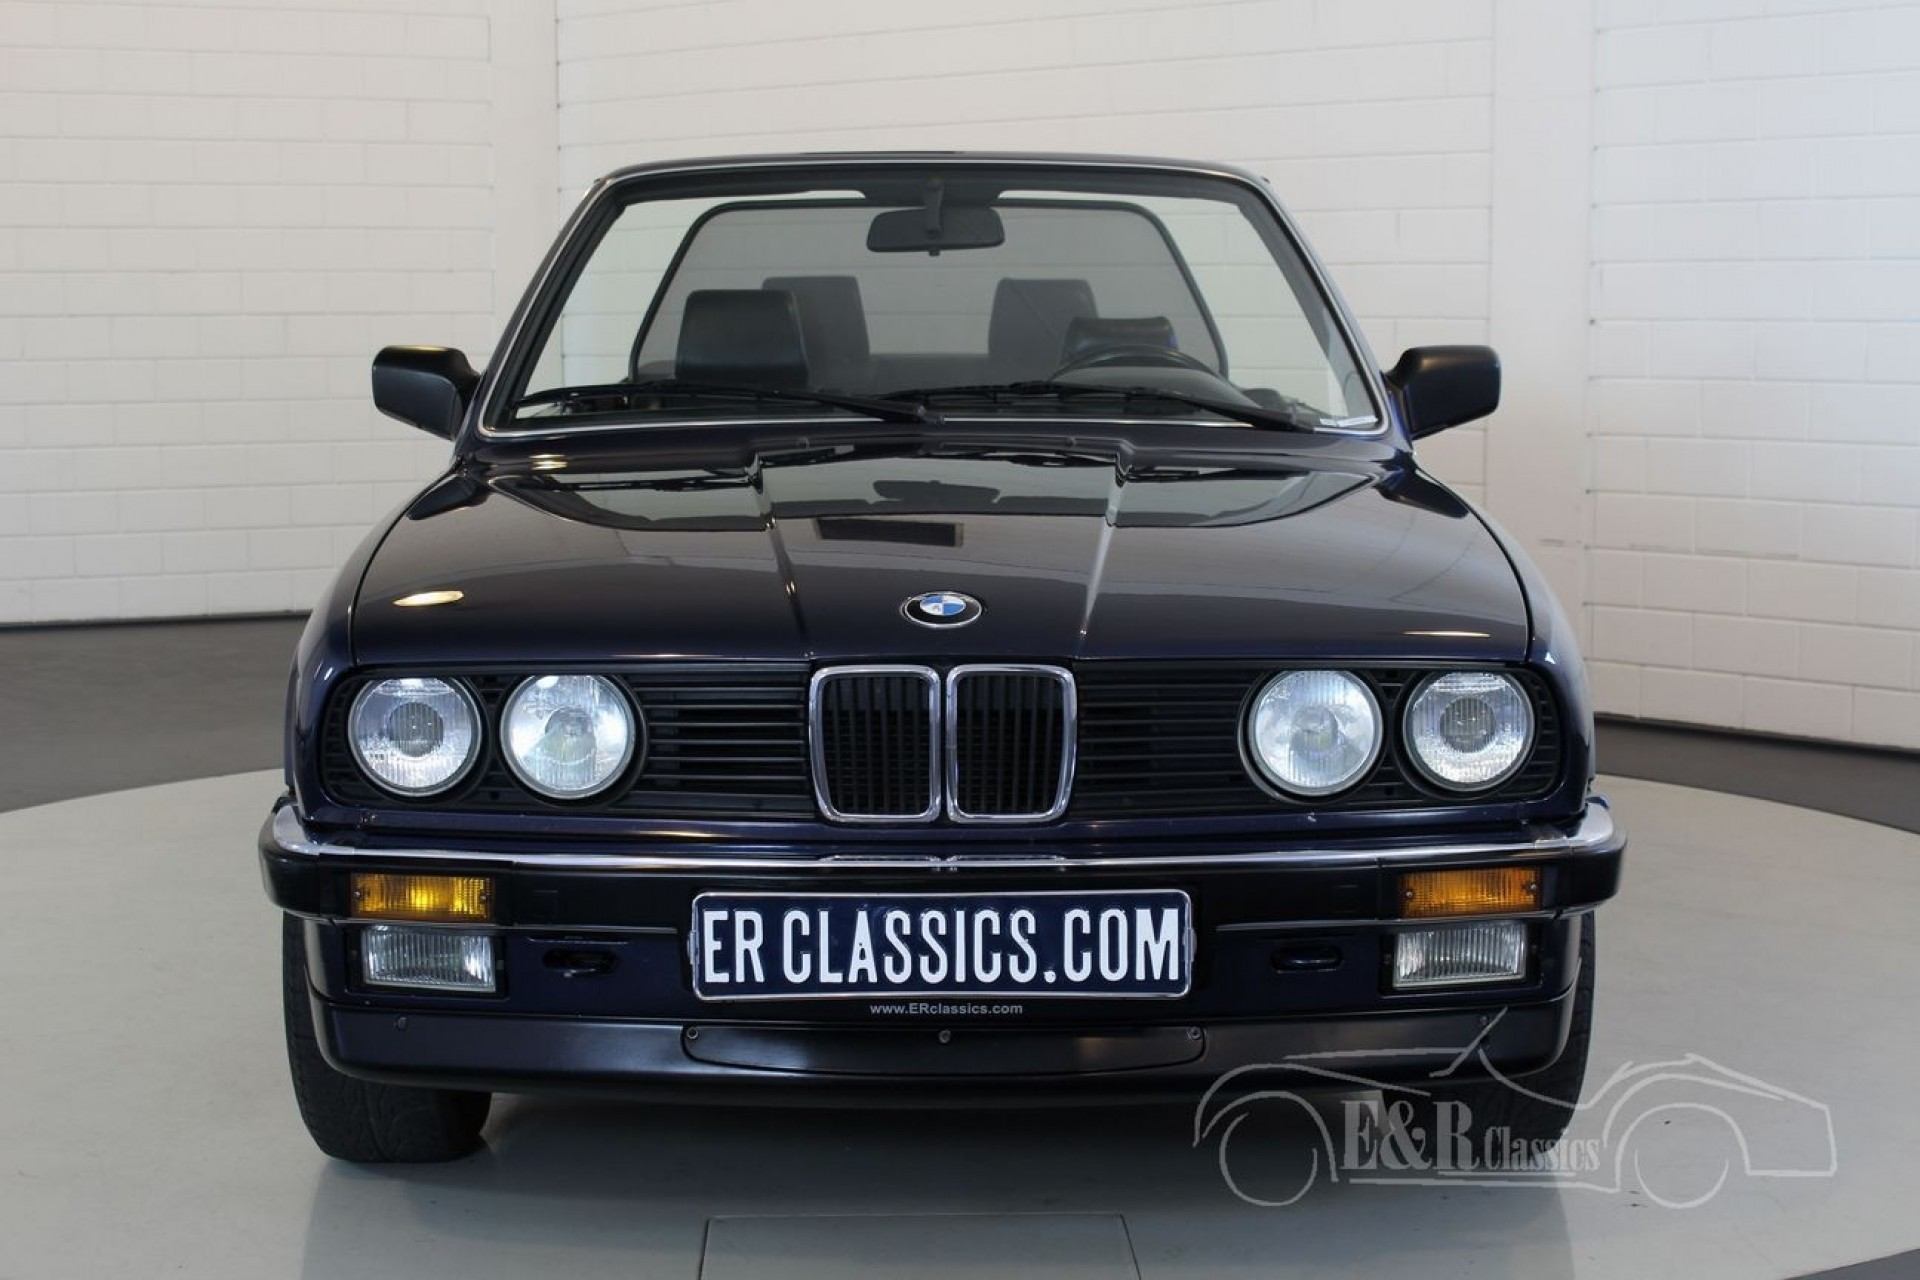 bmw 320i e30 cabriolet 1988 for sale at erclassics. Black Bedroom Furniture Sets. Home Design Ideas